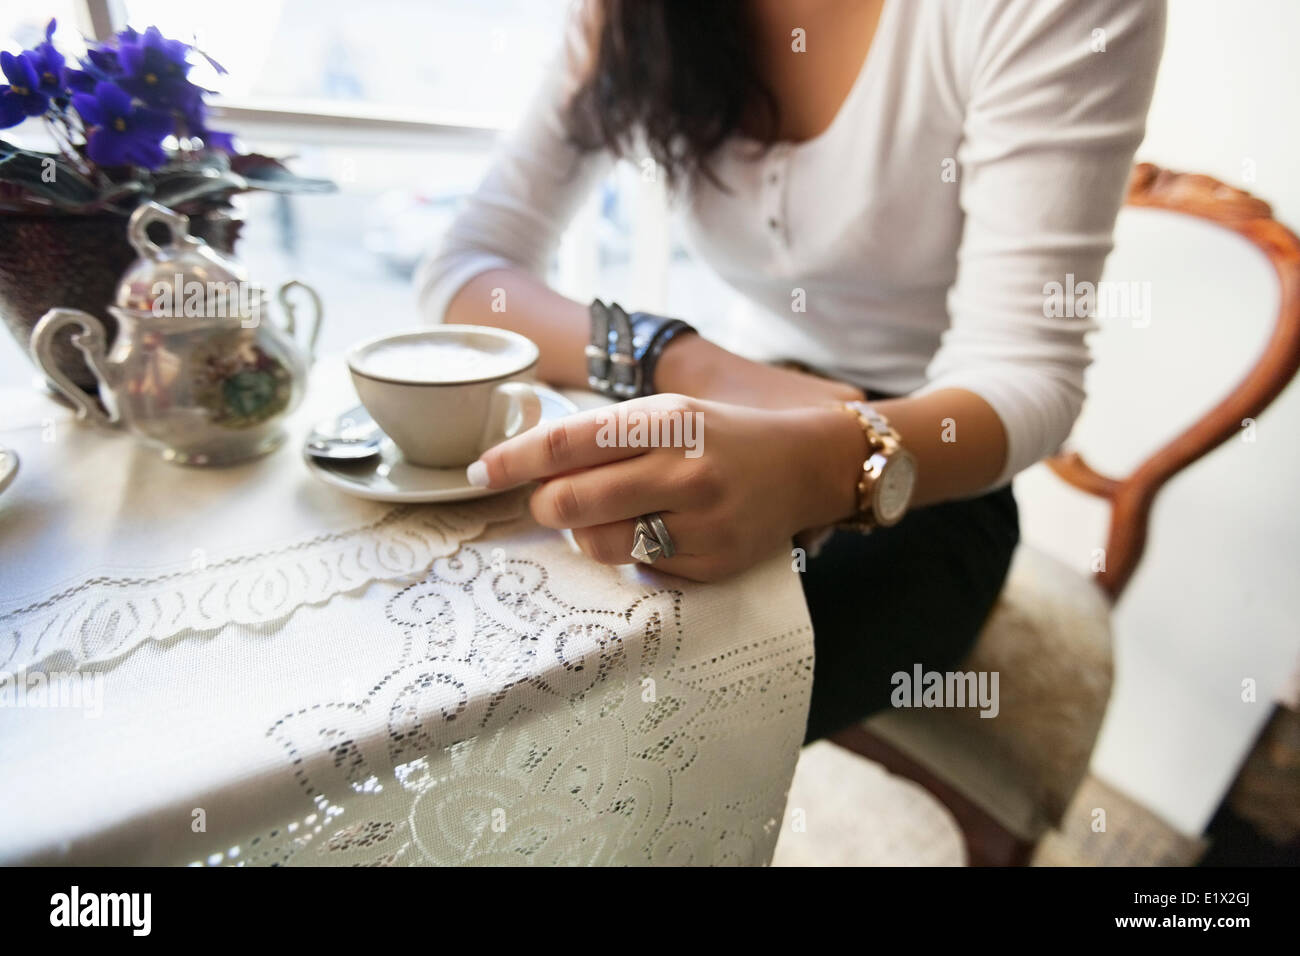 Midsection of woman having coffee at cafe - Stock Image